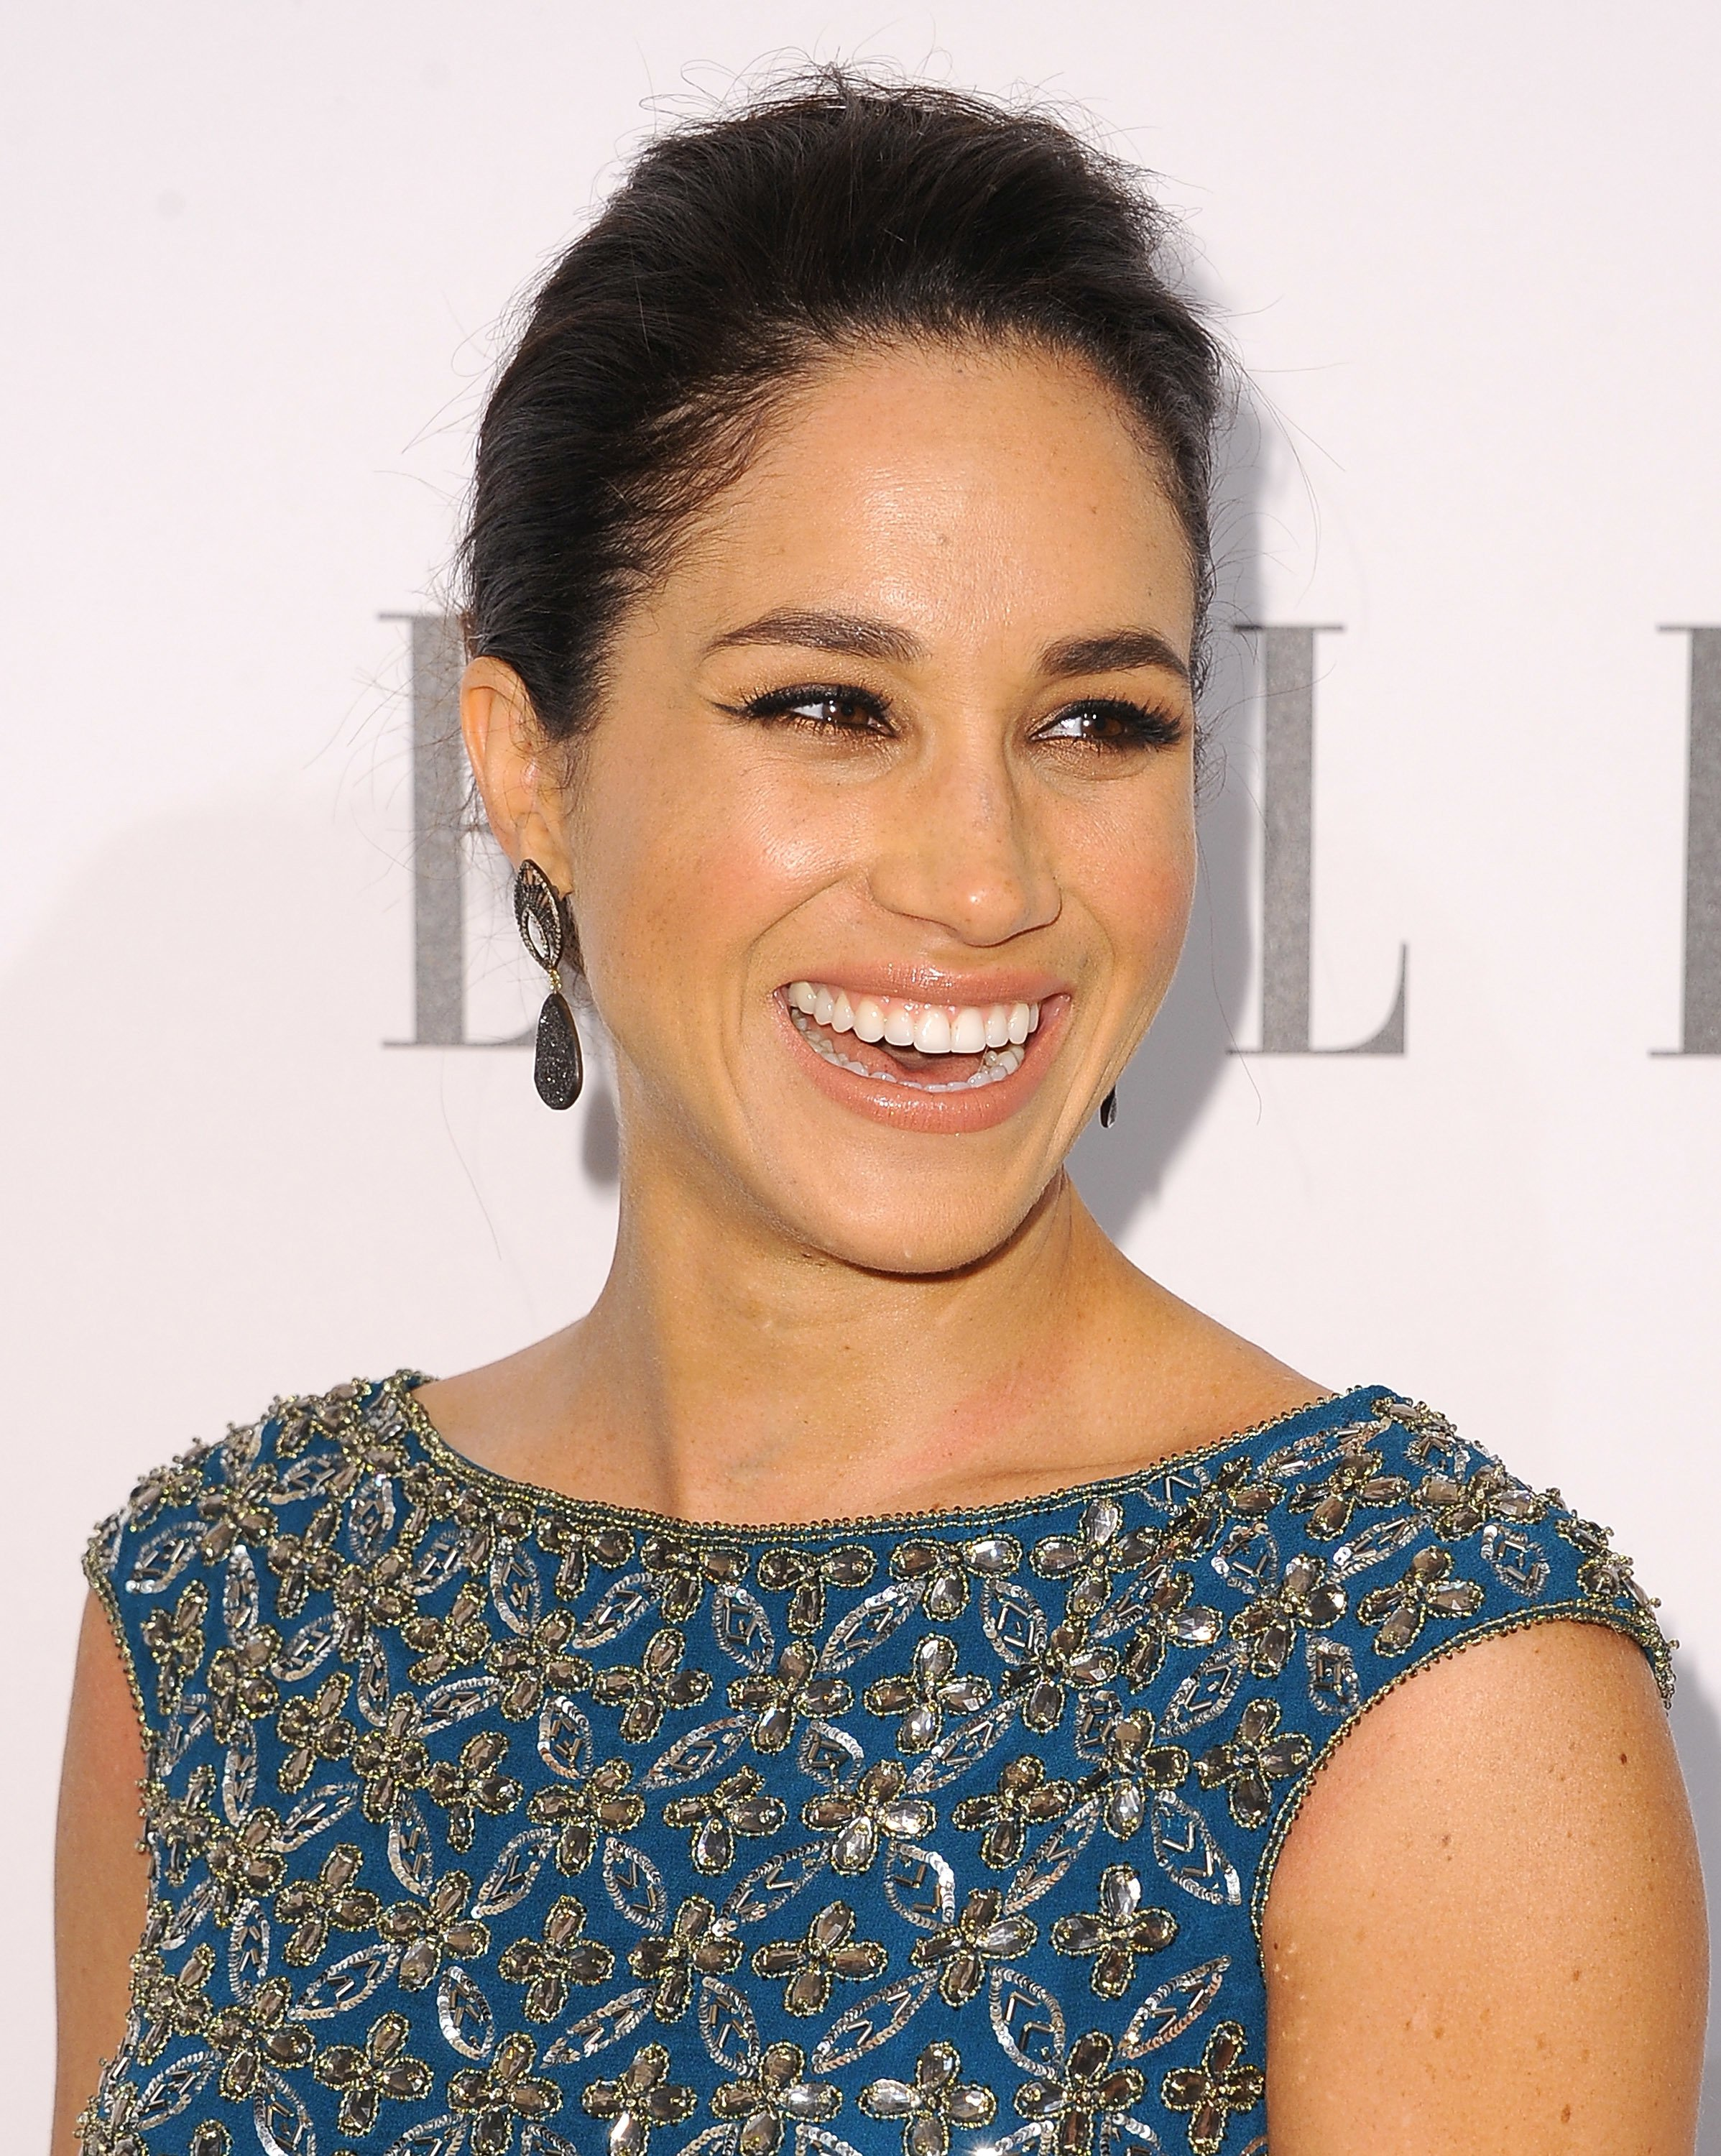 Actress Meghan Markle attends ELLE's Annual Women in Television Celebration at Sunset Tower on January 22, 2014 | Photo: Getty Images